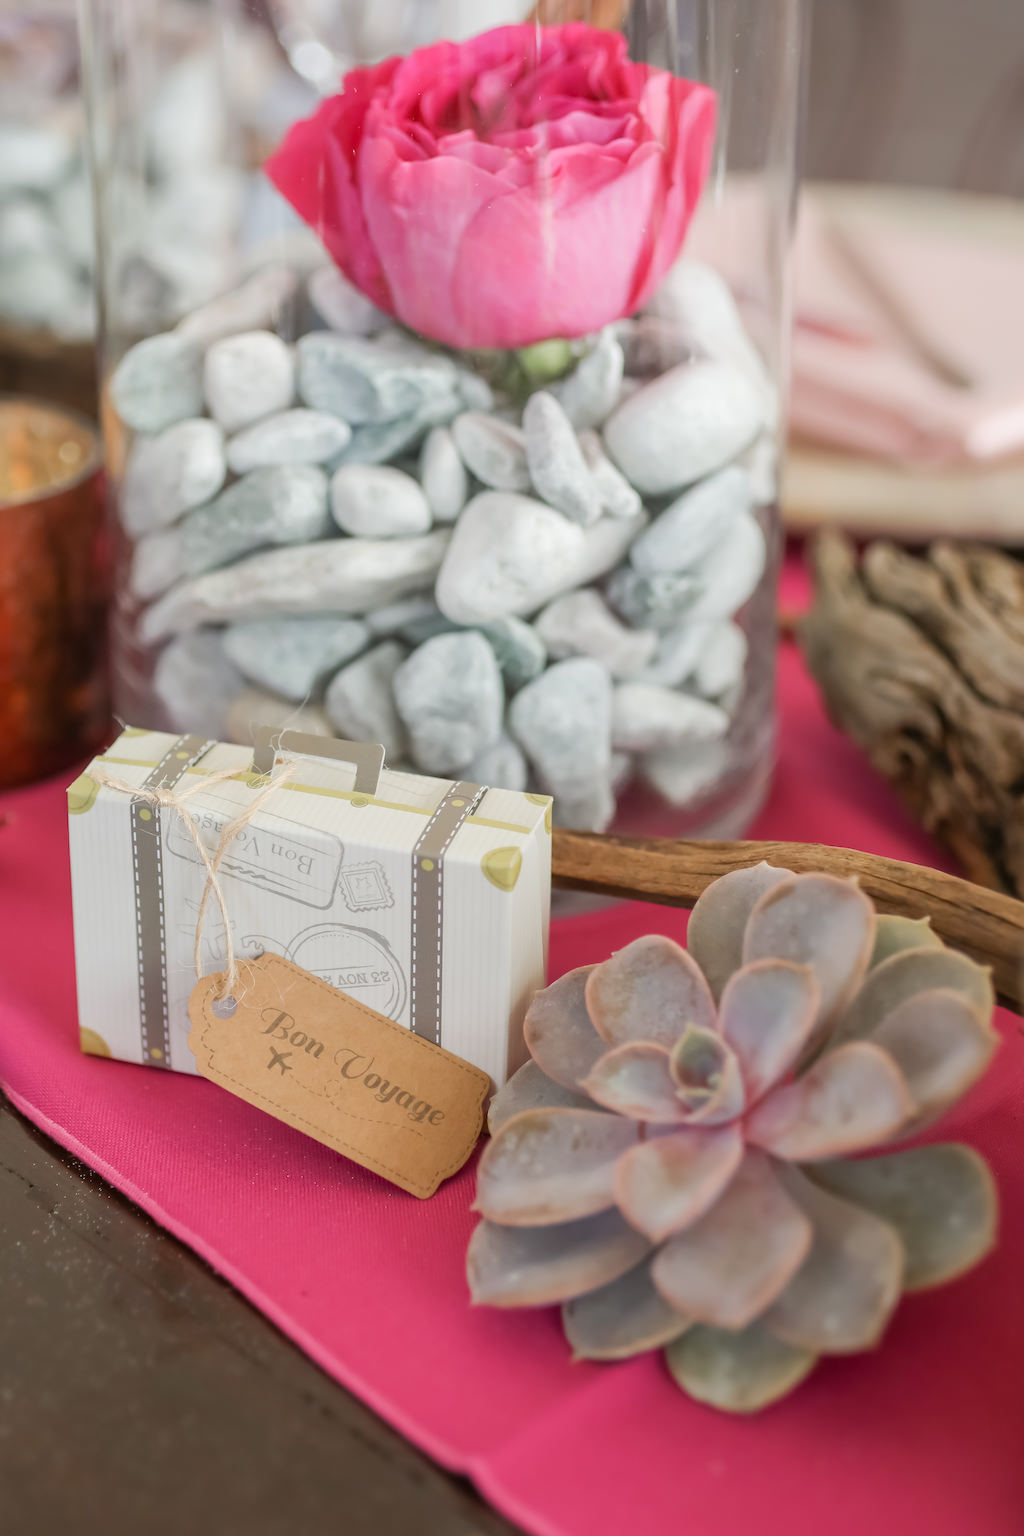 Travel Inspired Wedding Reception Decor, Hot Pink Table Runner, Glass Vase withe Rocks and Pink Garden Rose, Succulent and Small Suitcase Wedding Favor Box | Tampa Bay Wedding Photographer Lifelong Photography Studios